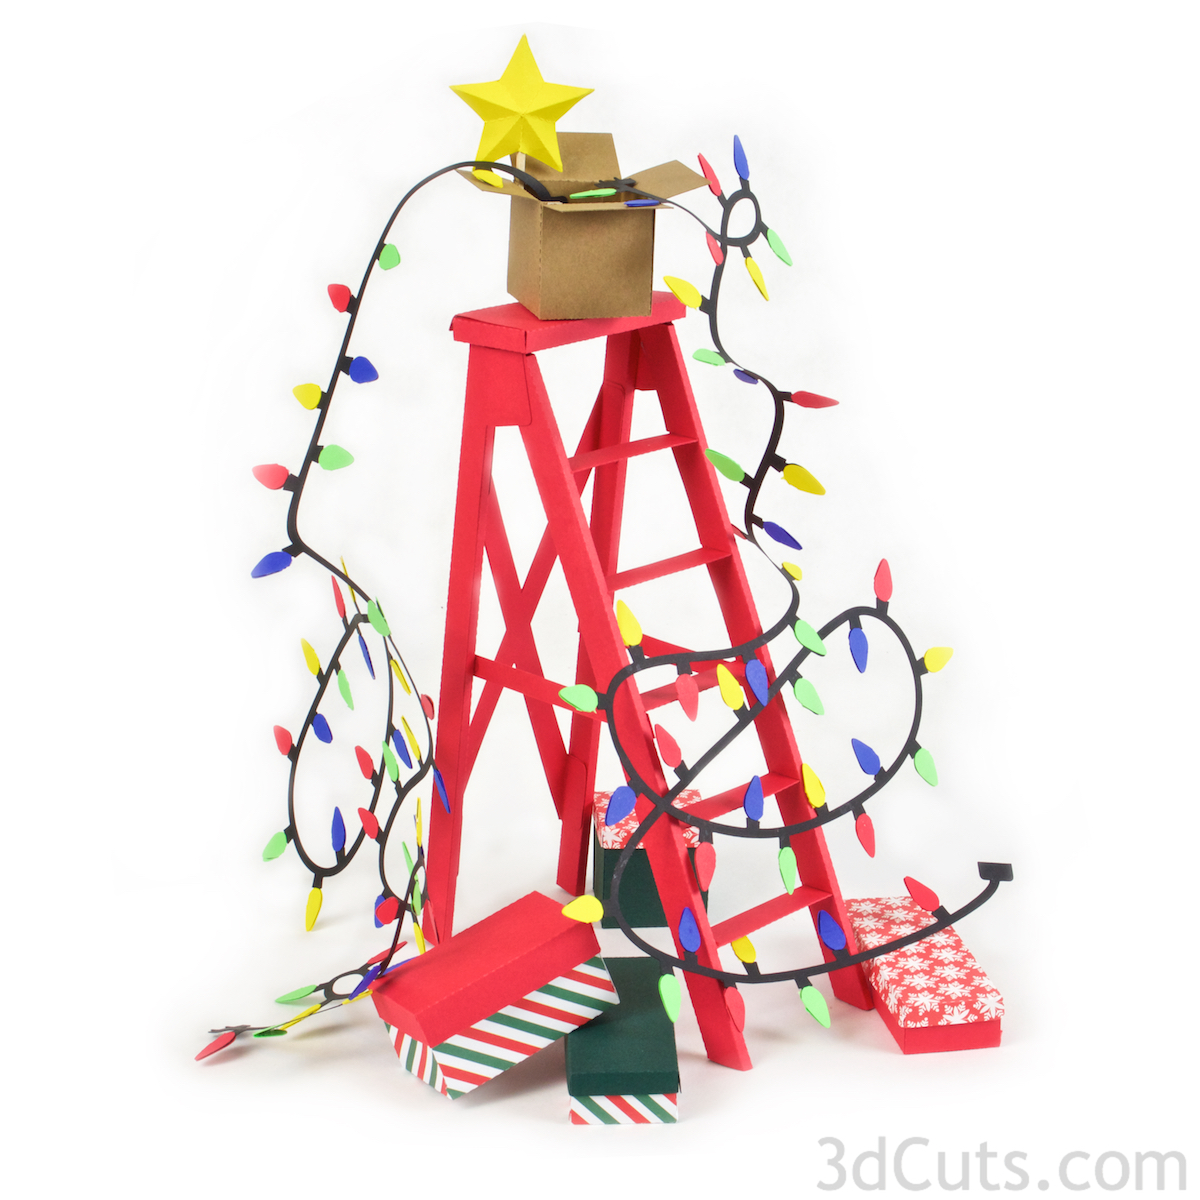 3d Christmas Ladder centerpiece constructed from card stock. SVG,PDF,   PNG, DXF cutting files available from 3dcuts.com. Designed by Marji Roy